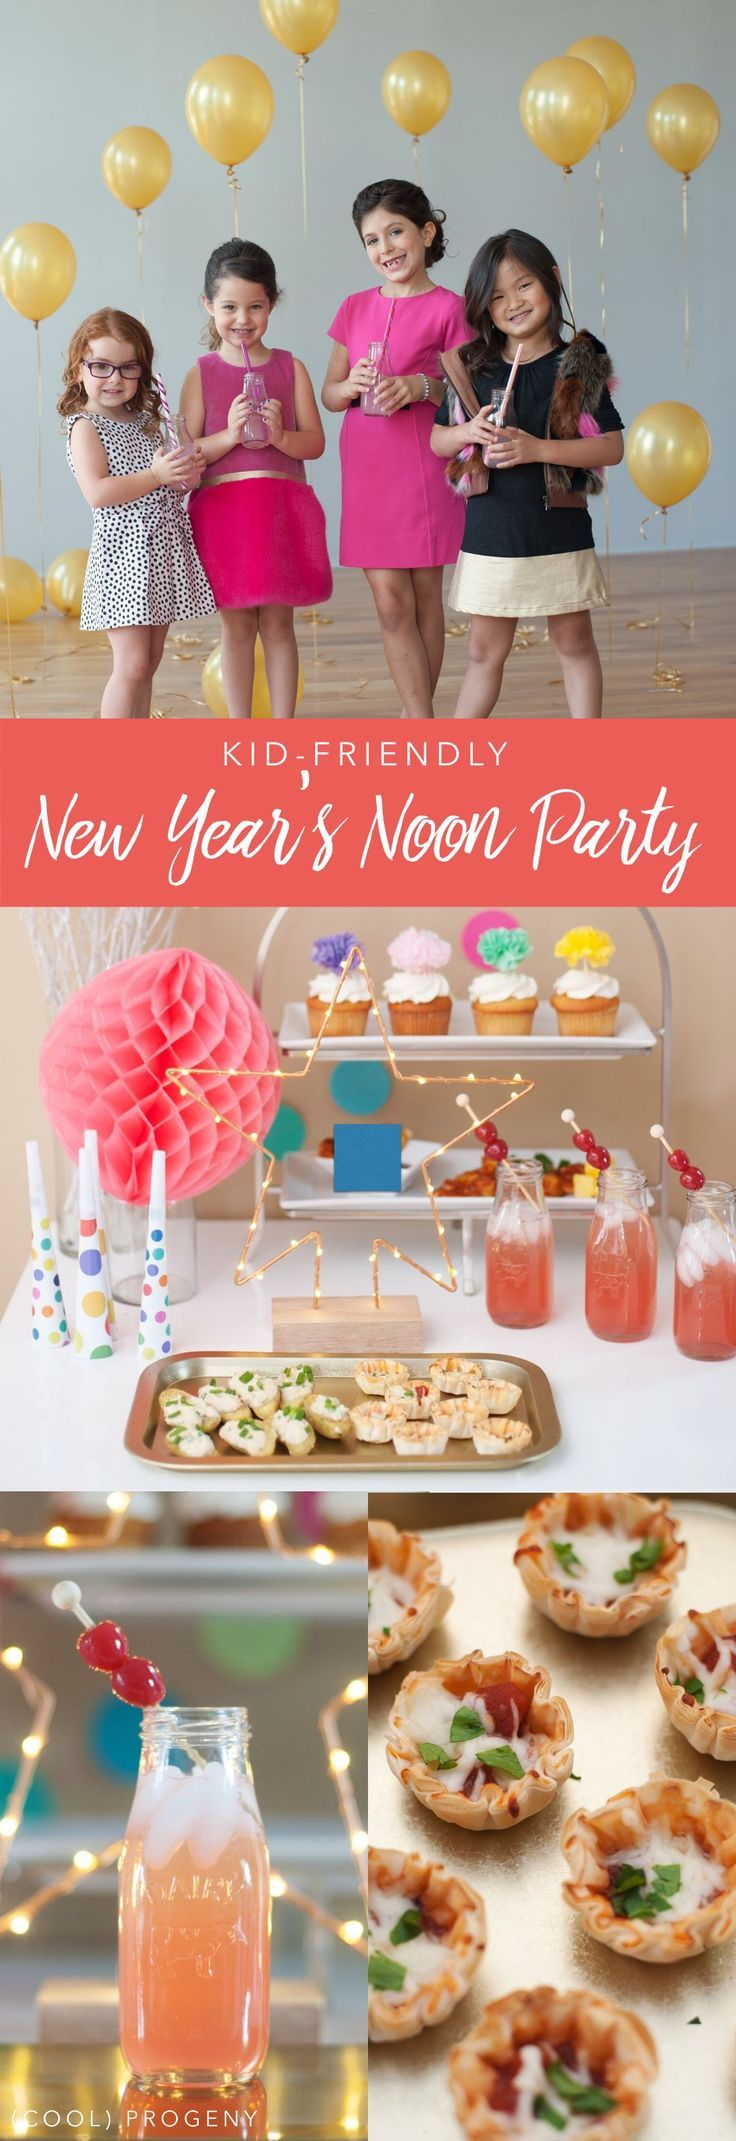 kidfriendly new year's noon party Kids new years eve